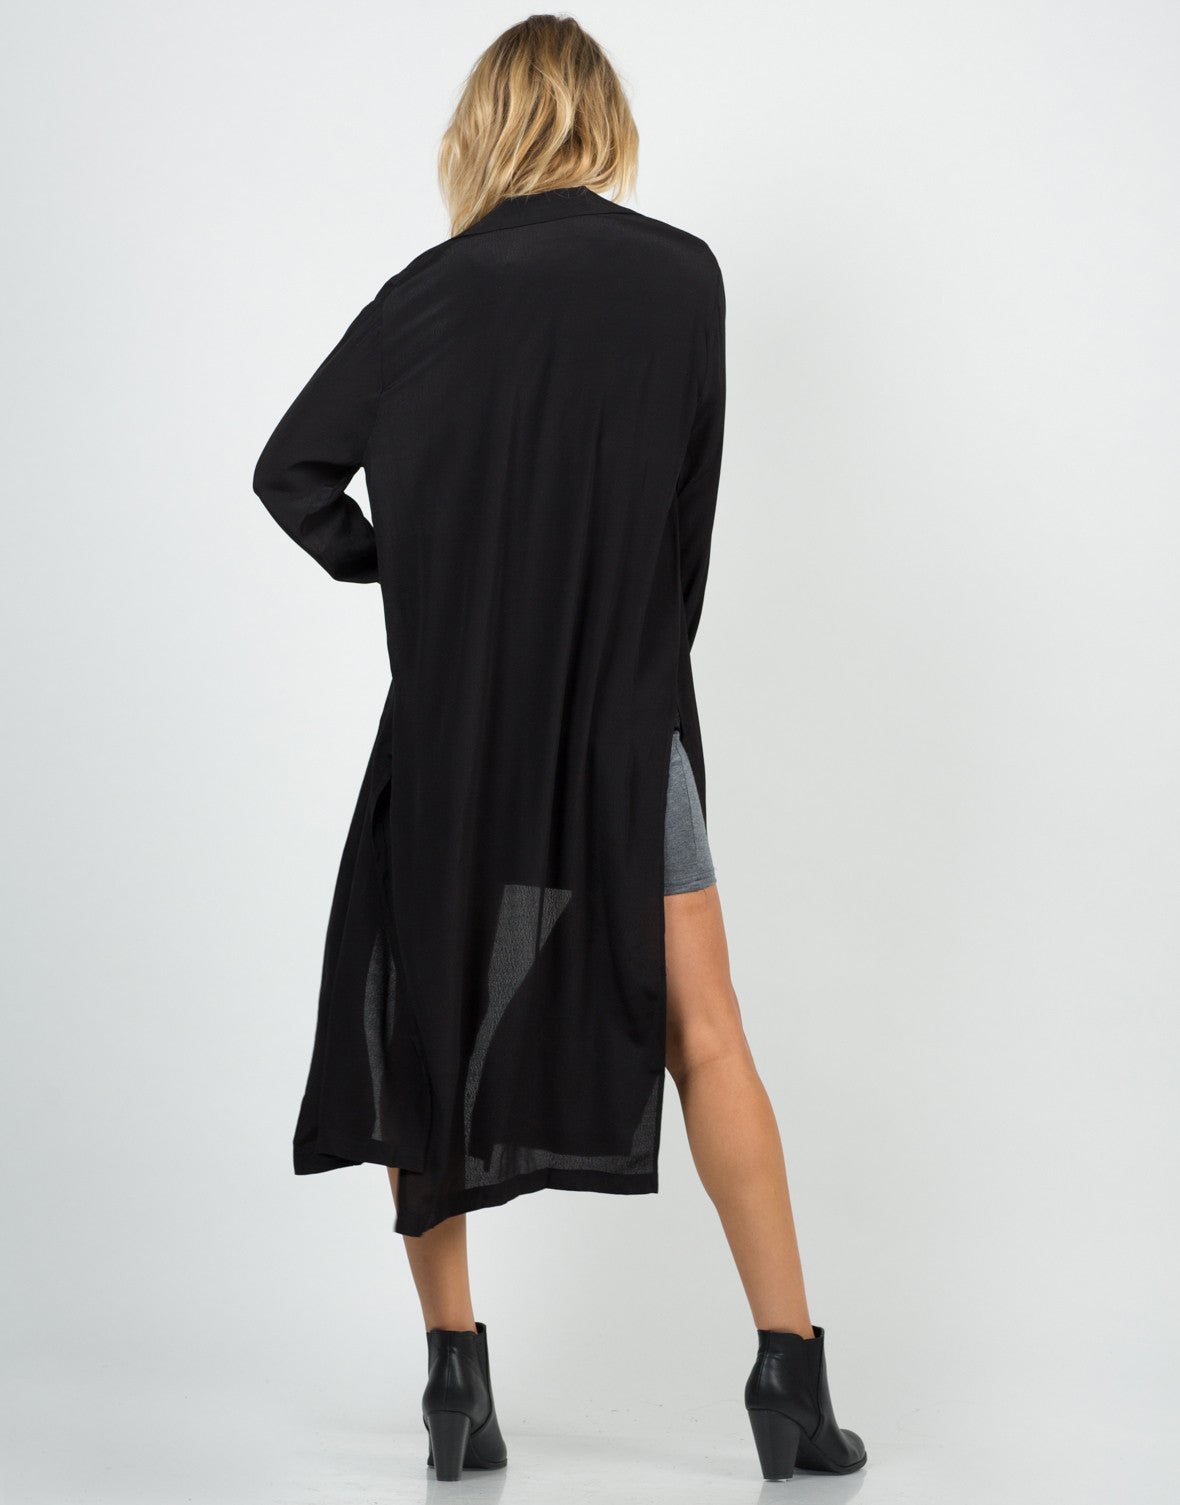 Back View of Mid-Length Open Collar Jacket